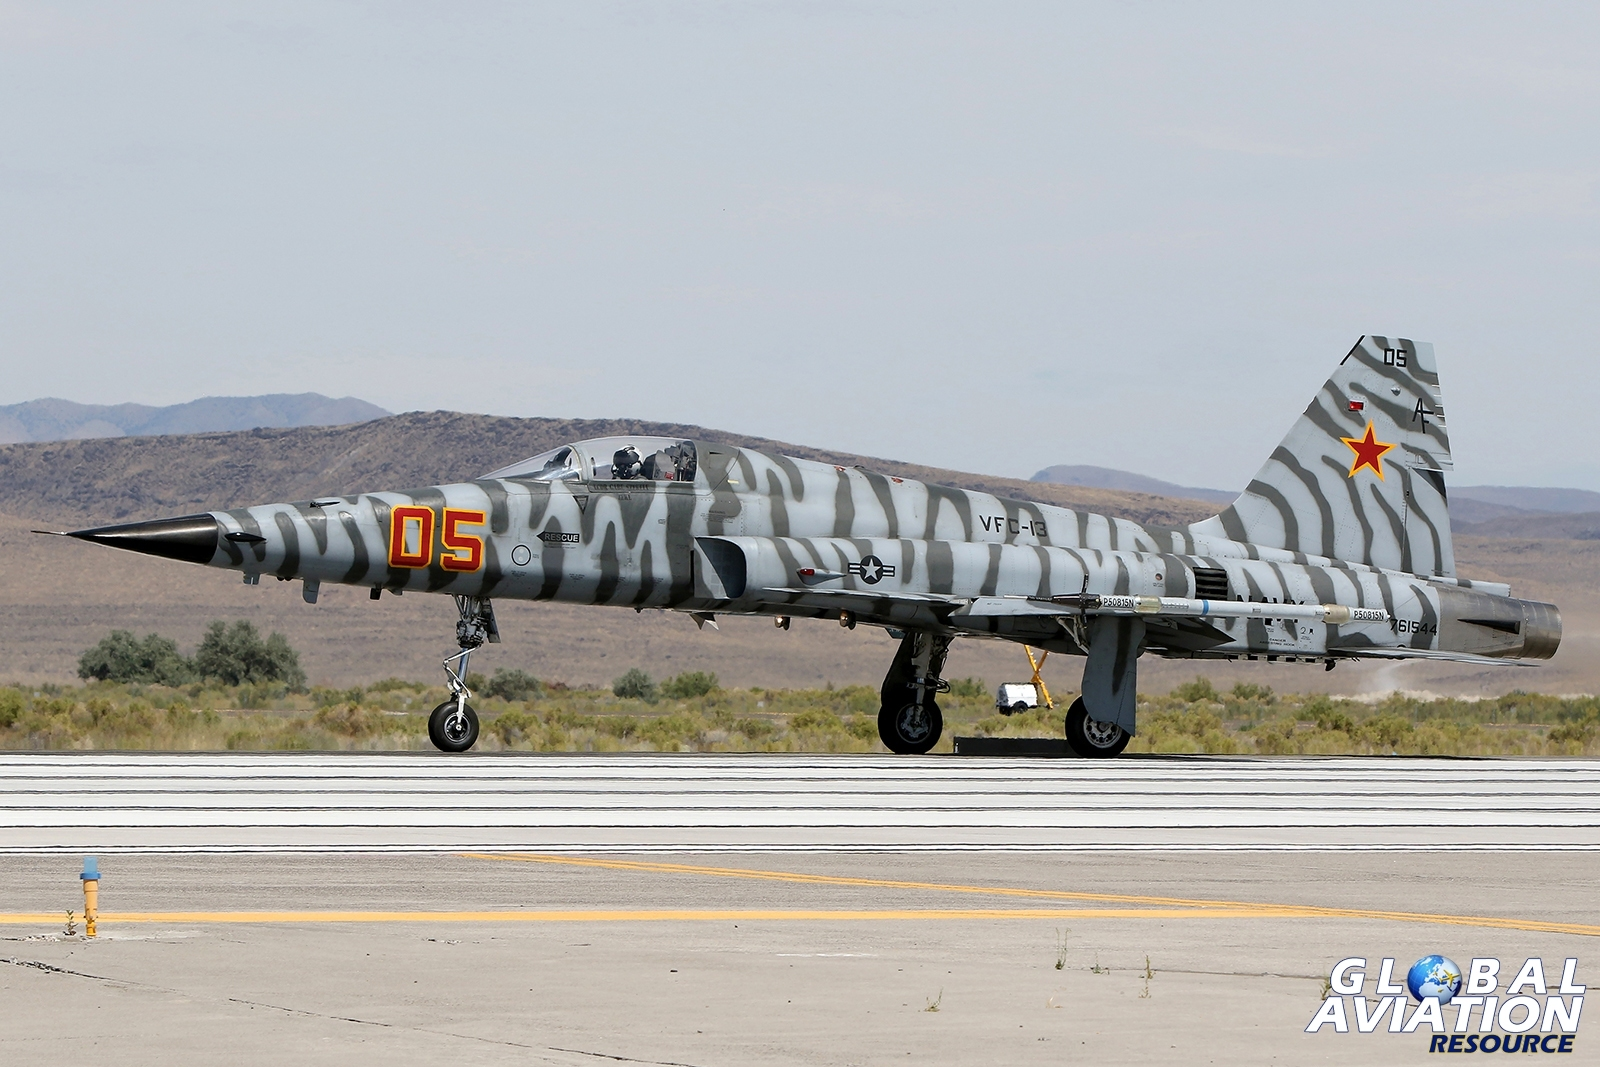 F-5E from VFC-13 Saints begins its take off roll at NAS Fallon © Paul Dunn - Global Aviation Resource